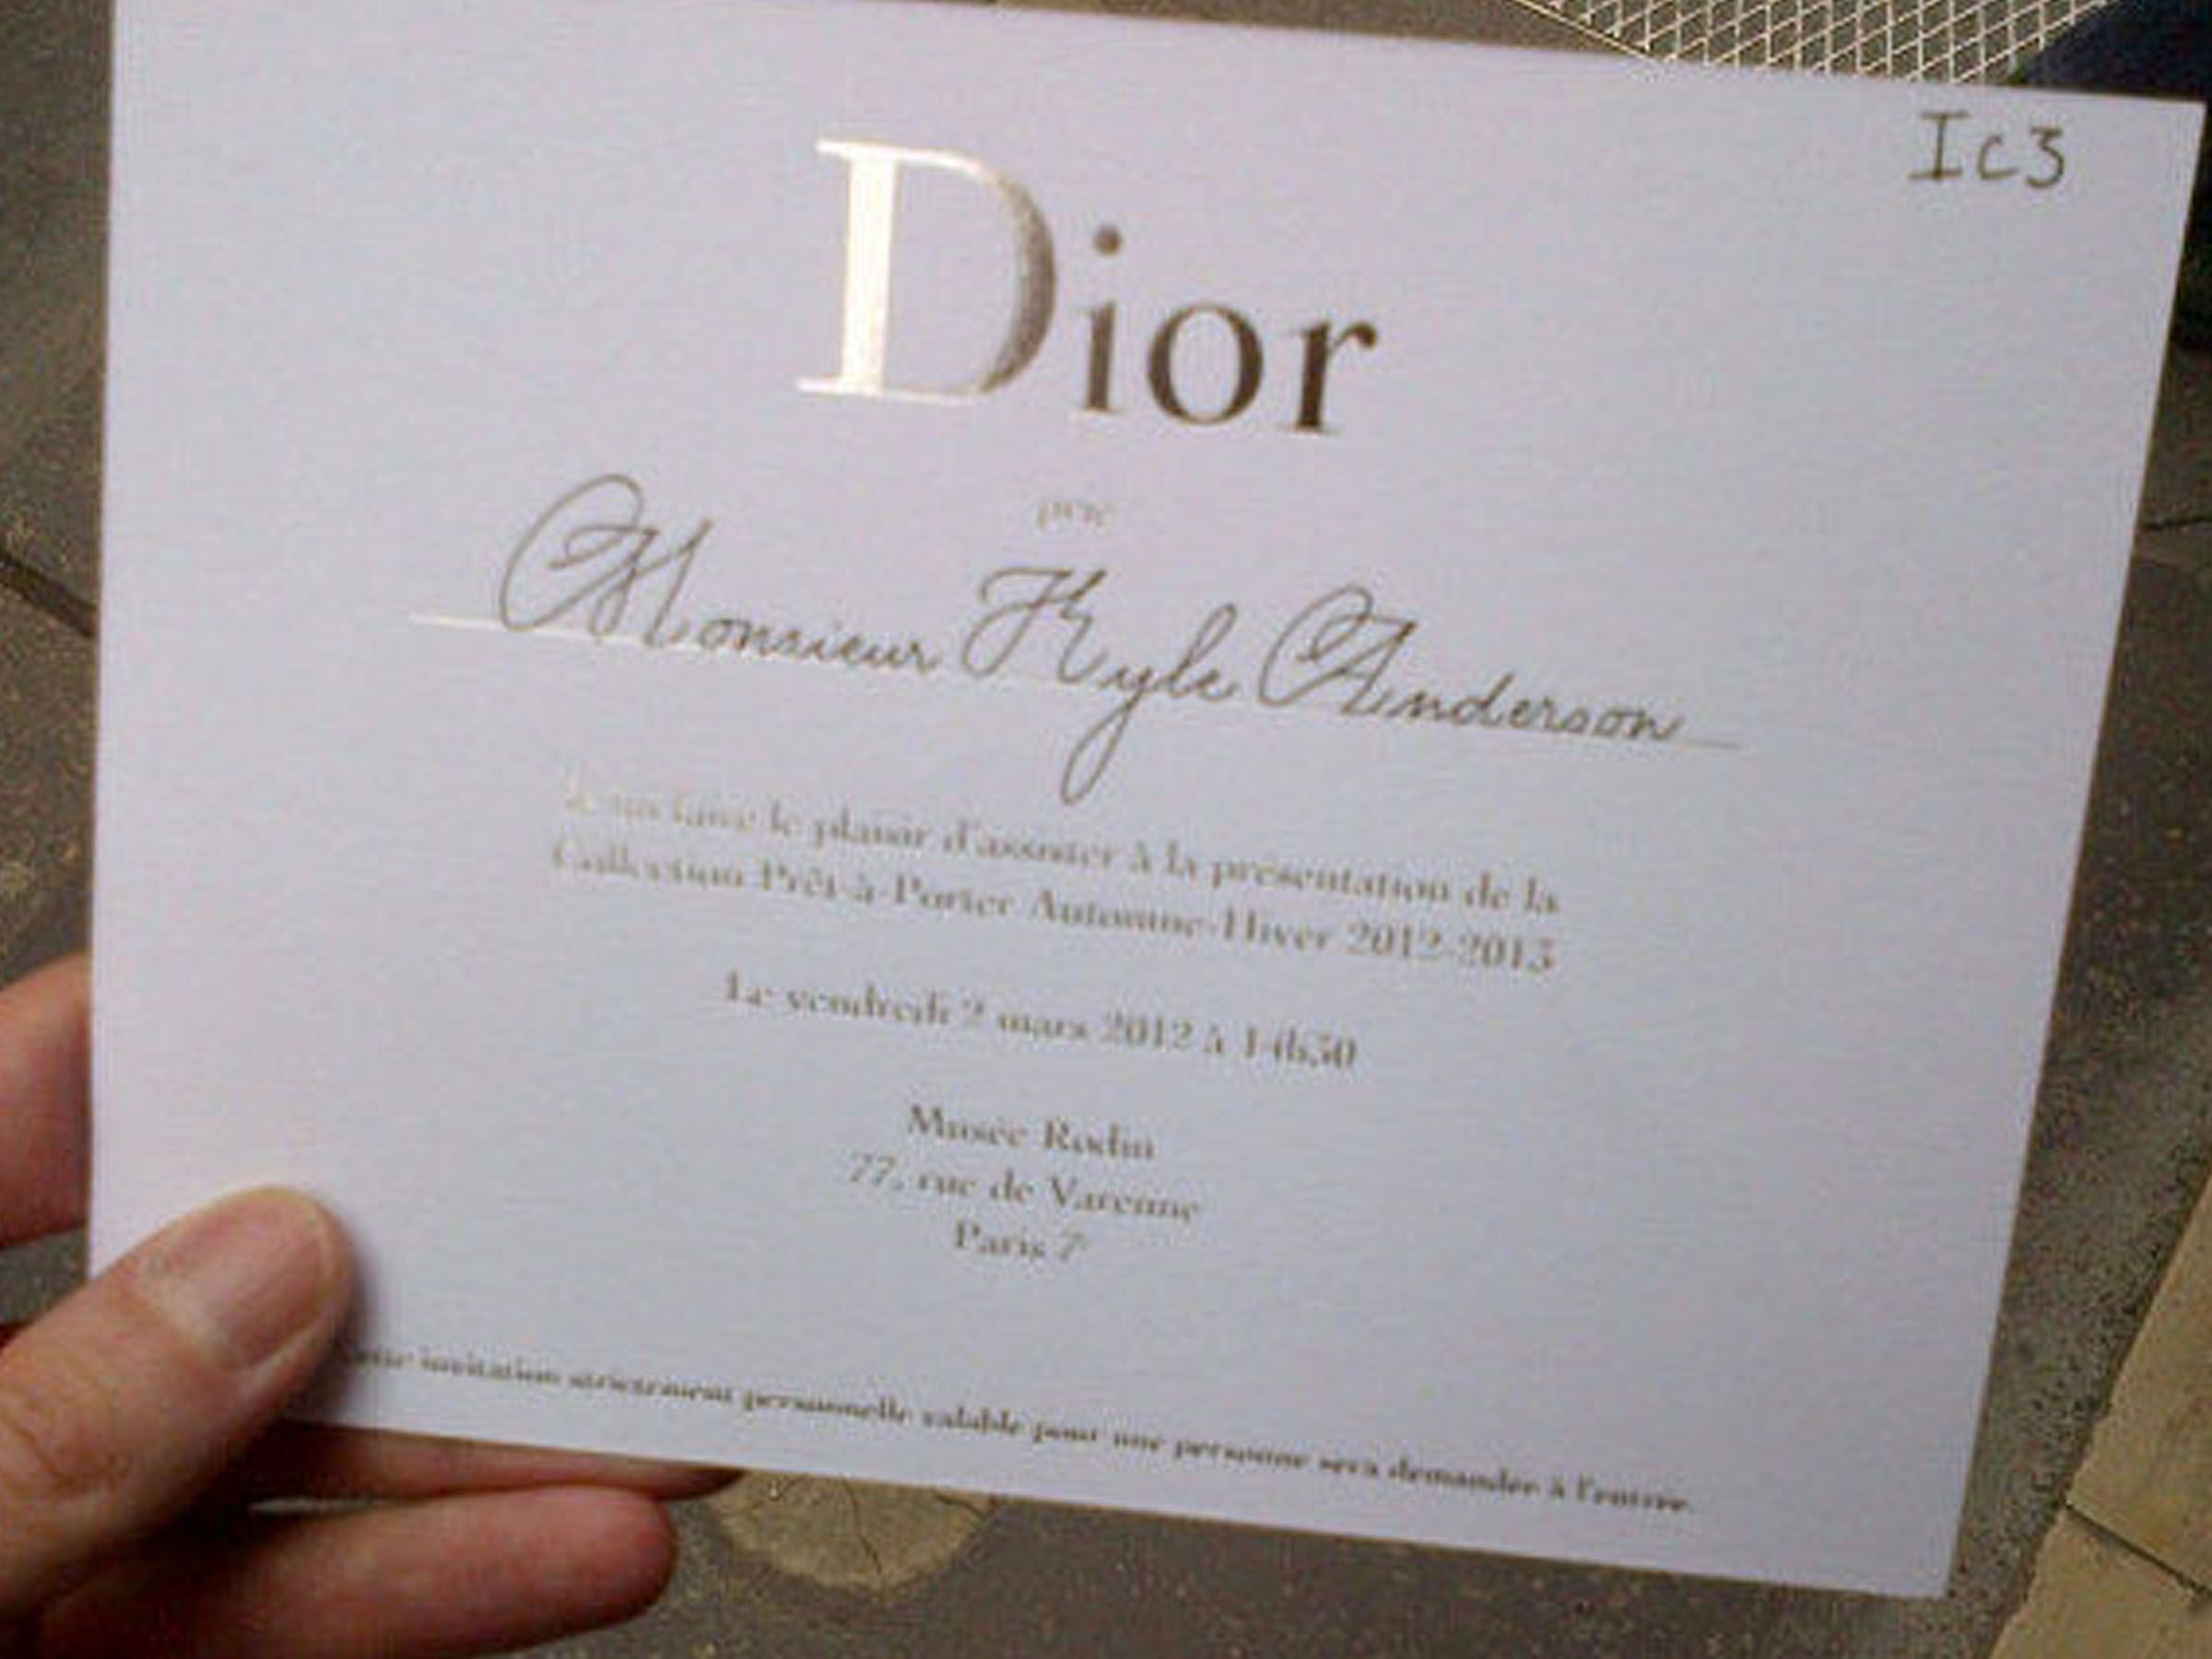 This dior fashion show ticket is a classic example for ticket ideas this dior fashion show ticket is a classic example for ticket ideas it is elegant and supports the aesthetics of the brand in its stereotypical classically stopboris Gallery